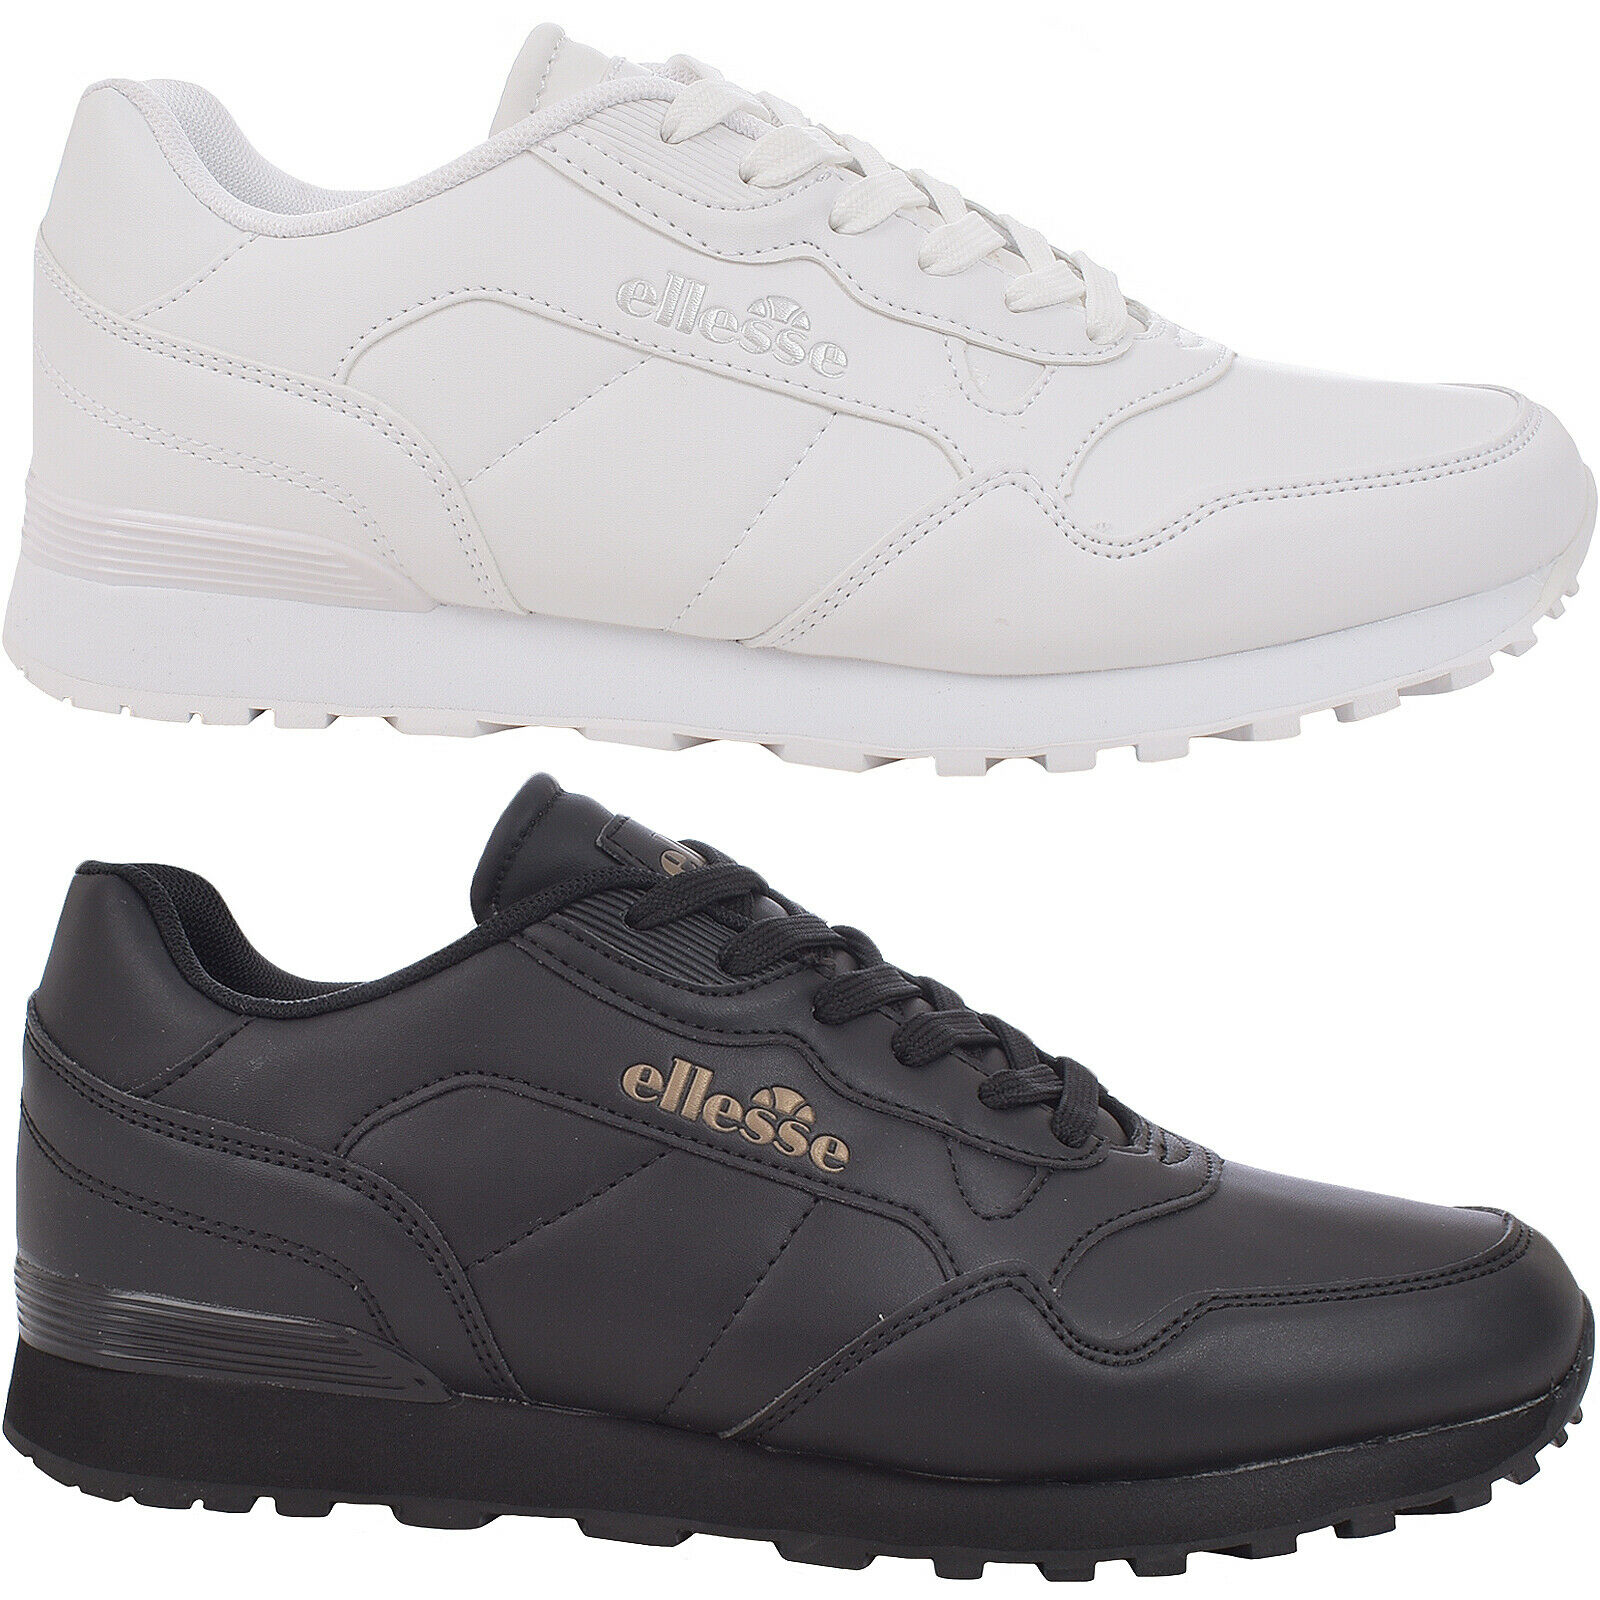 Ellesse Mens Leather Classic Casual Low Rise Lace Up Trainers Sneakers shoes